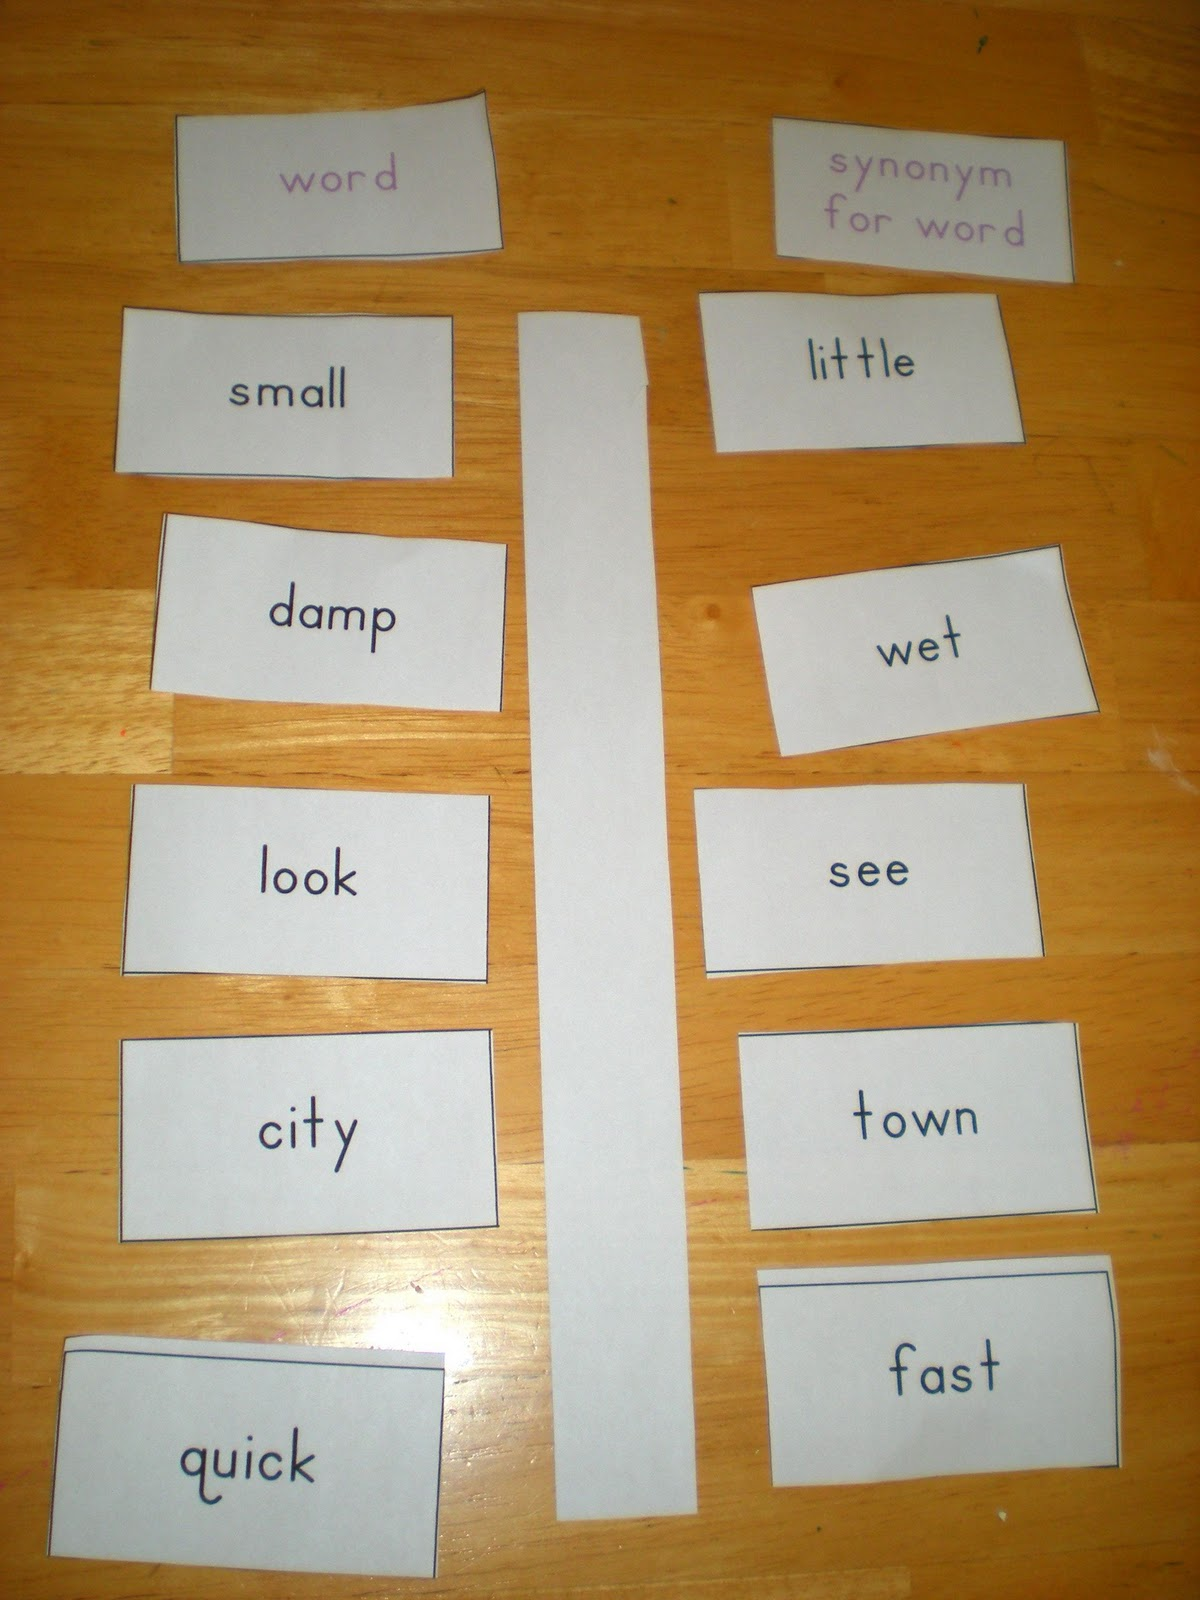 worksheet Learning Synonyms sippy cup central learning synonyms this week we are about words that mean the same thing i placed on left and olive had to match synonym right